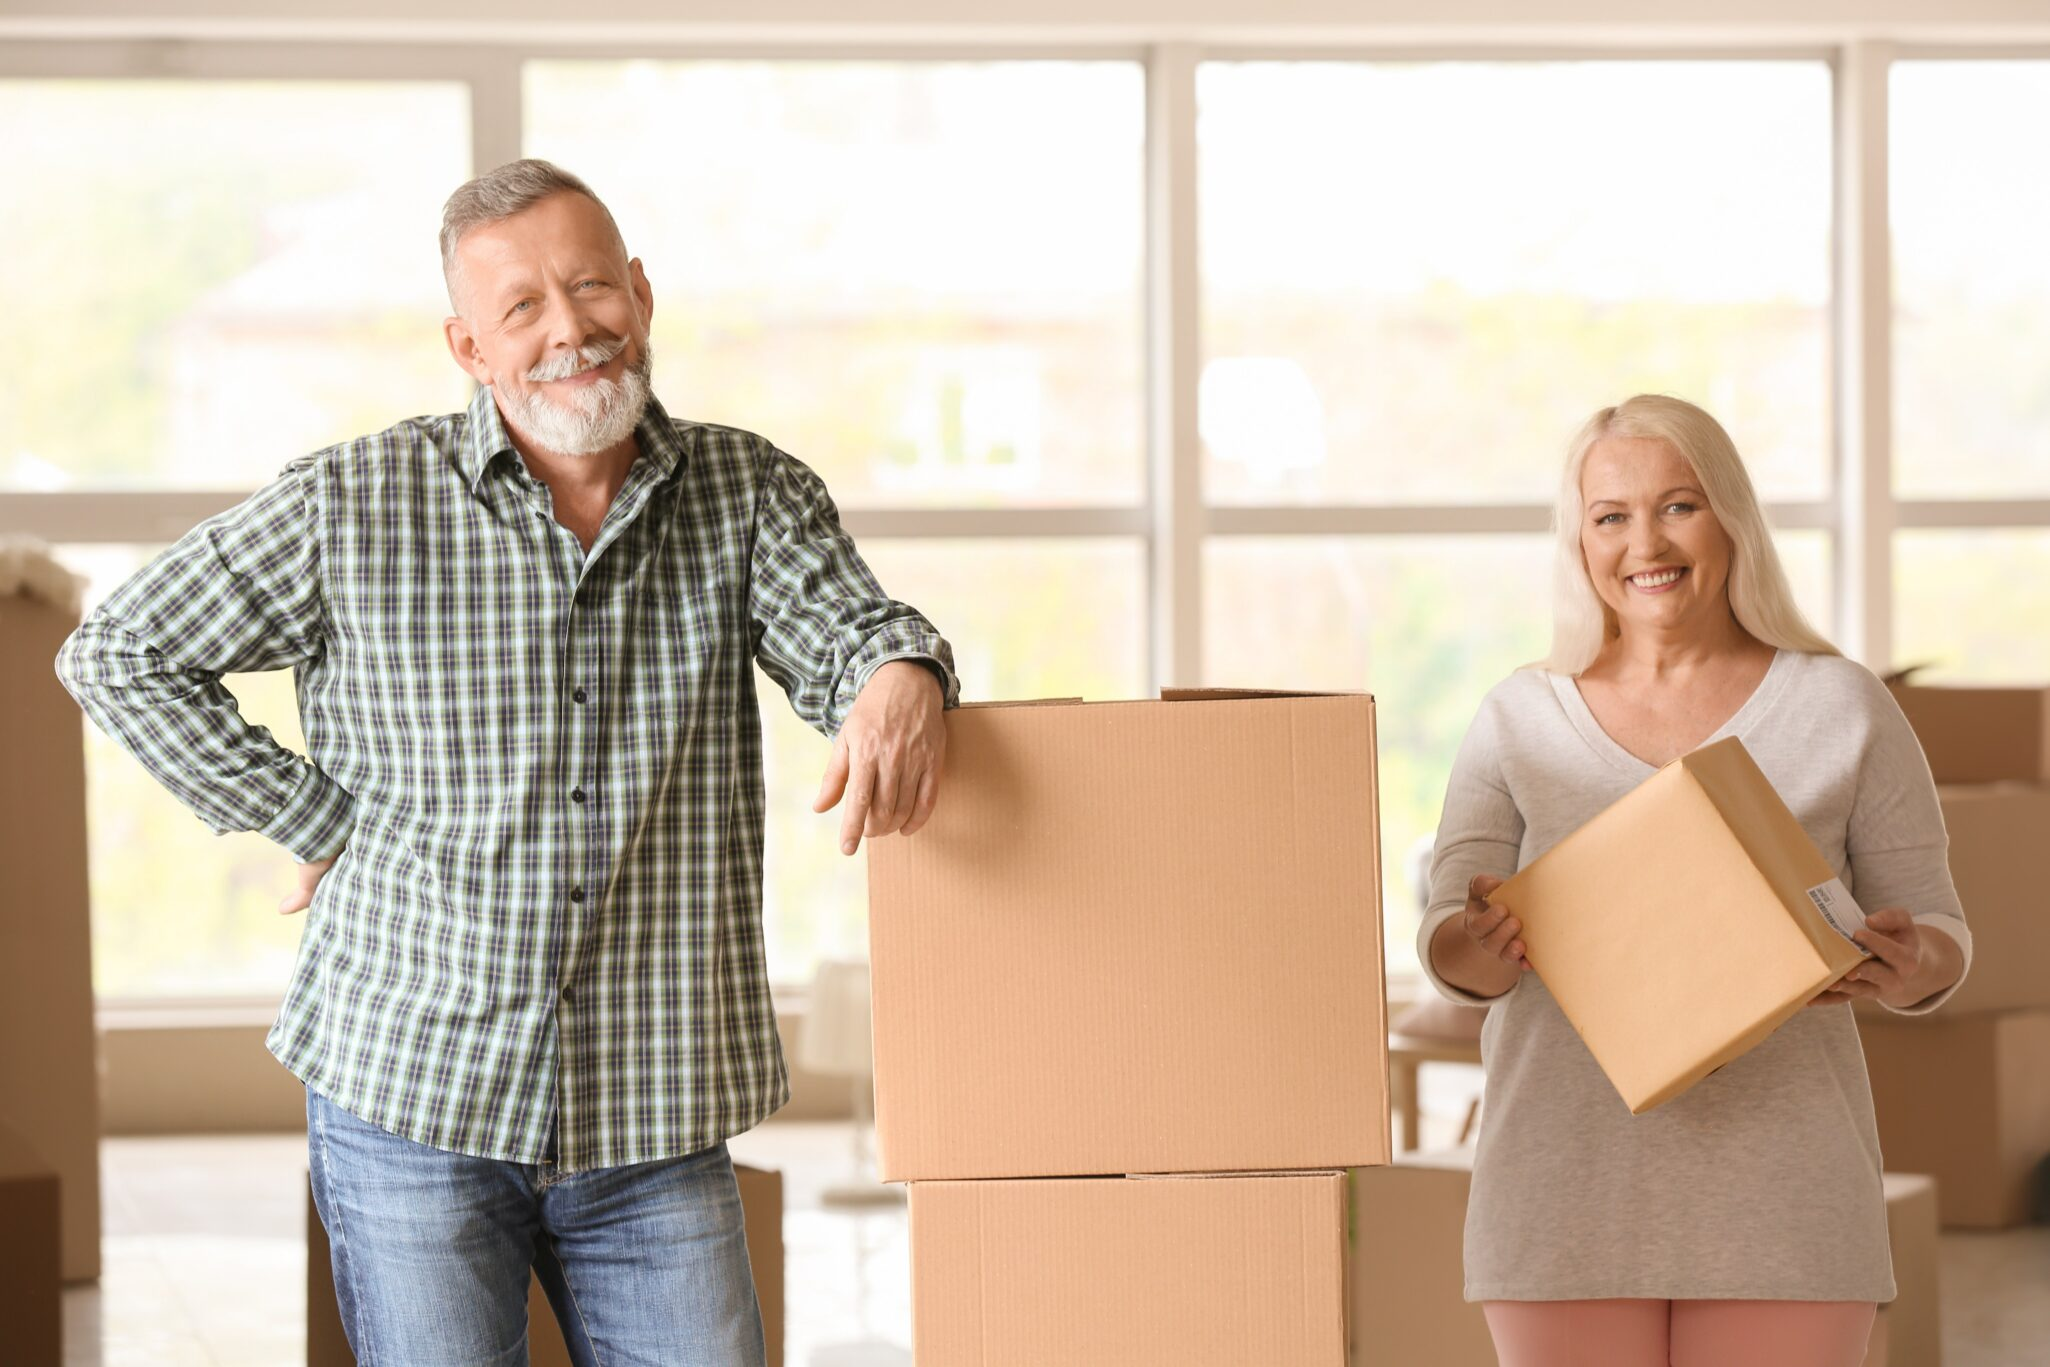 Don't Let Downsizing Get You Down